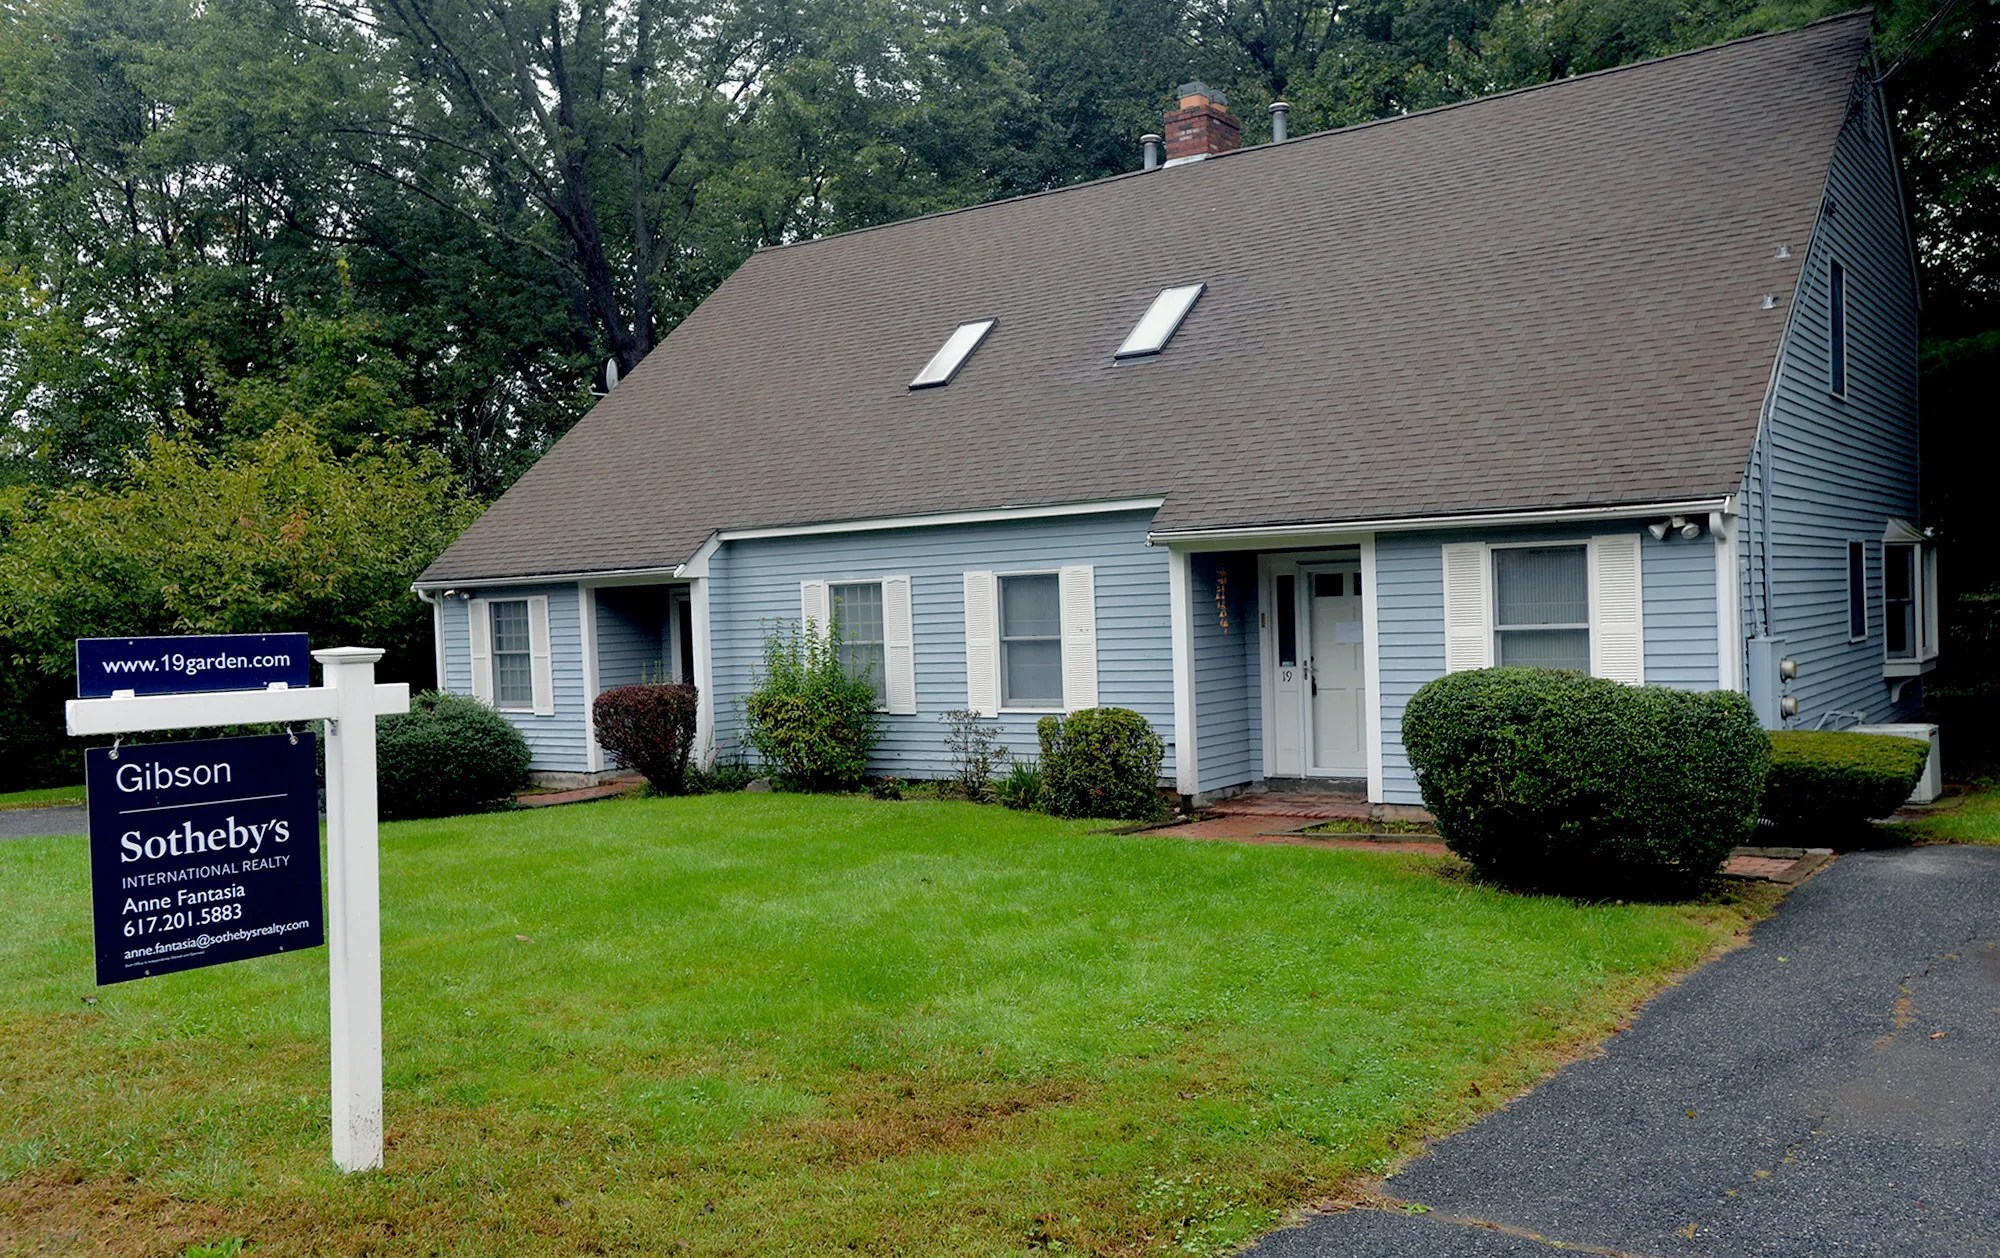 Home for sale at 19 Garden Road in Natick.